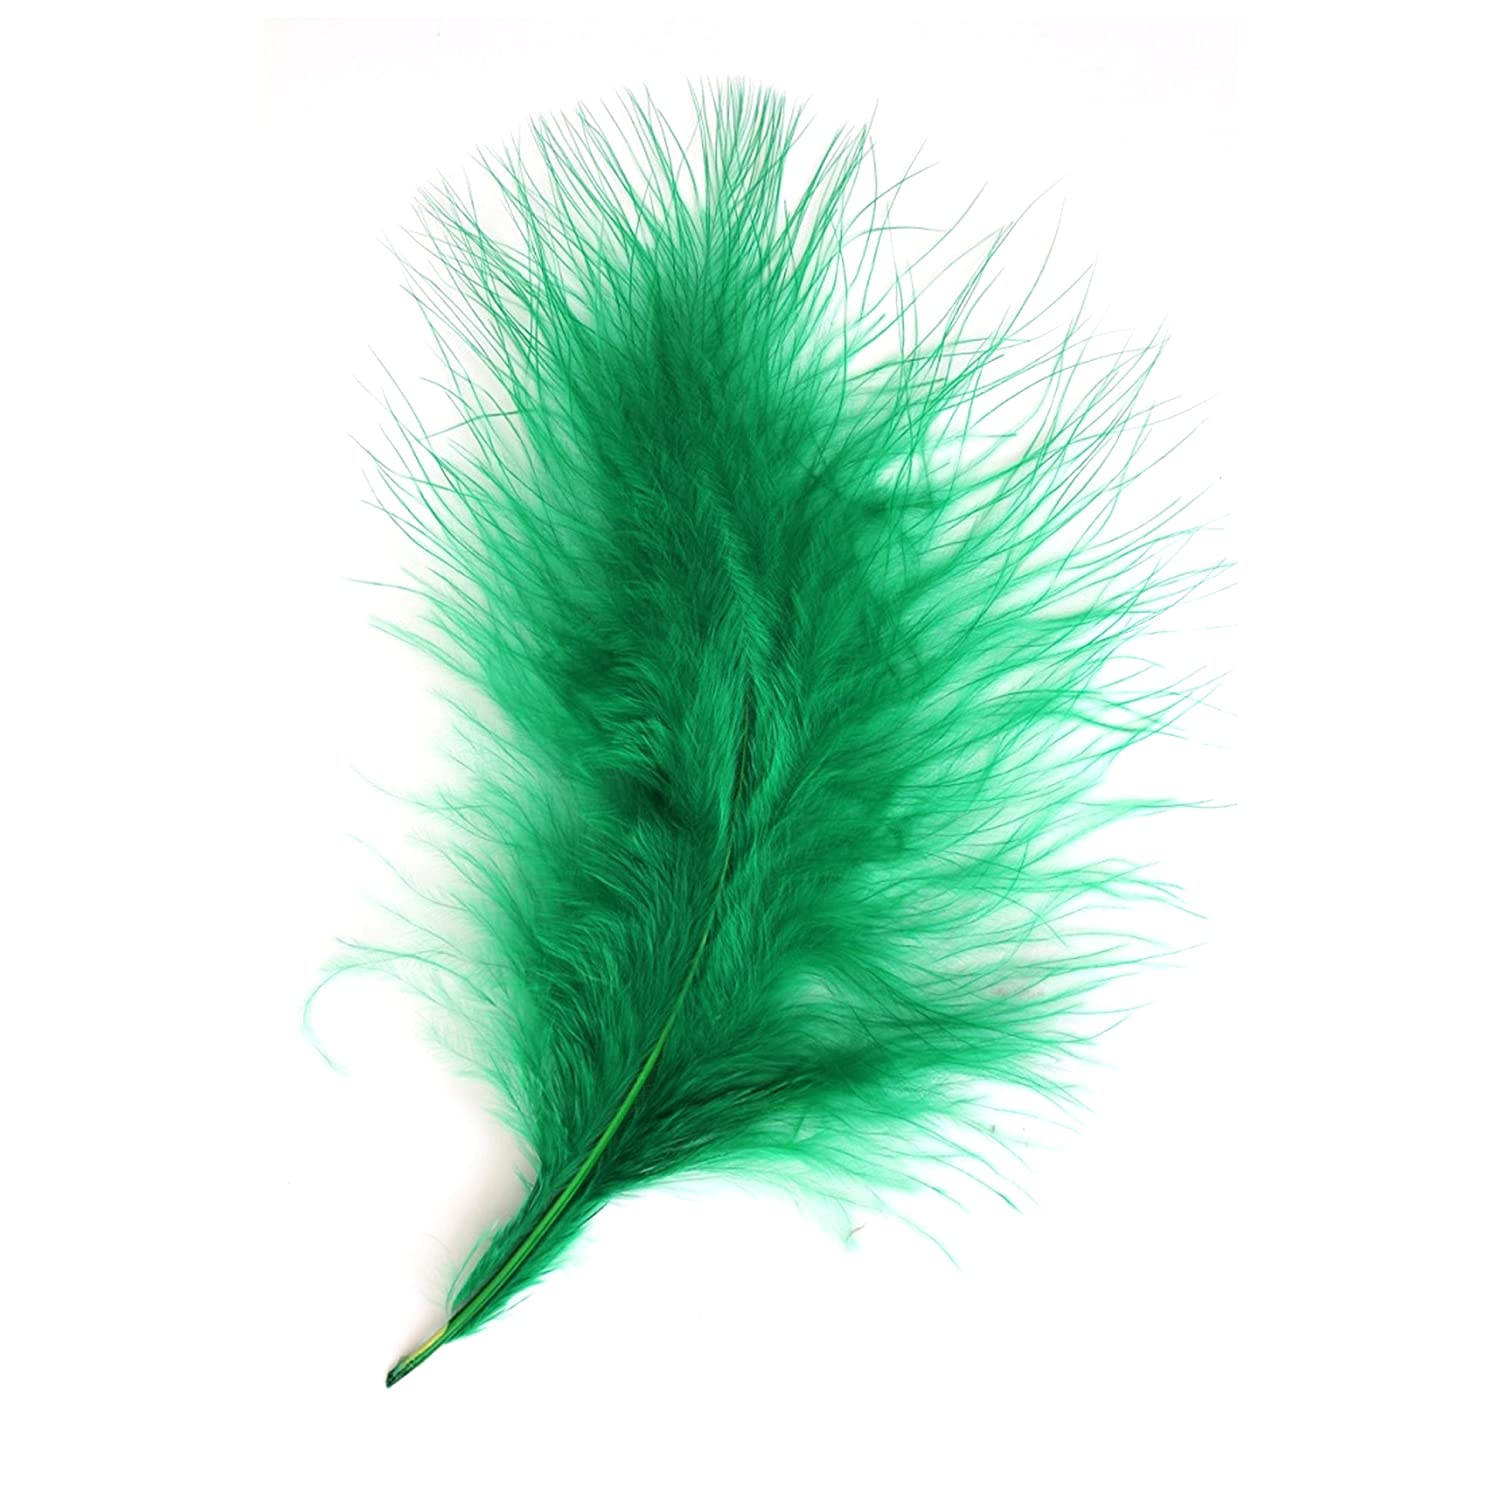 20 x large marabou feather 10-15cm  PINK for fly tying,crafts,cards etc.